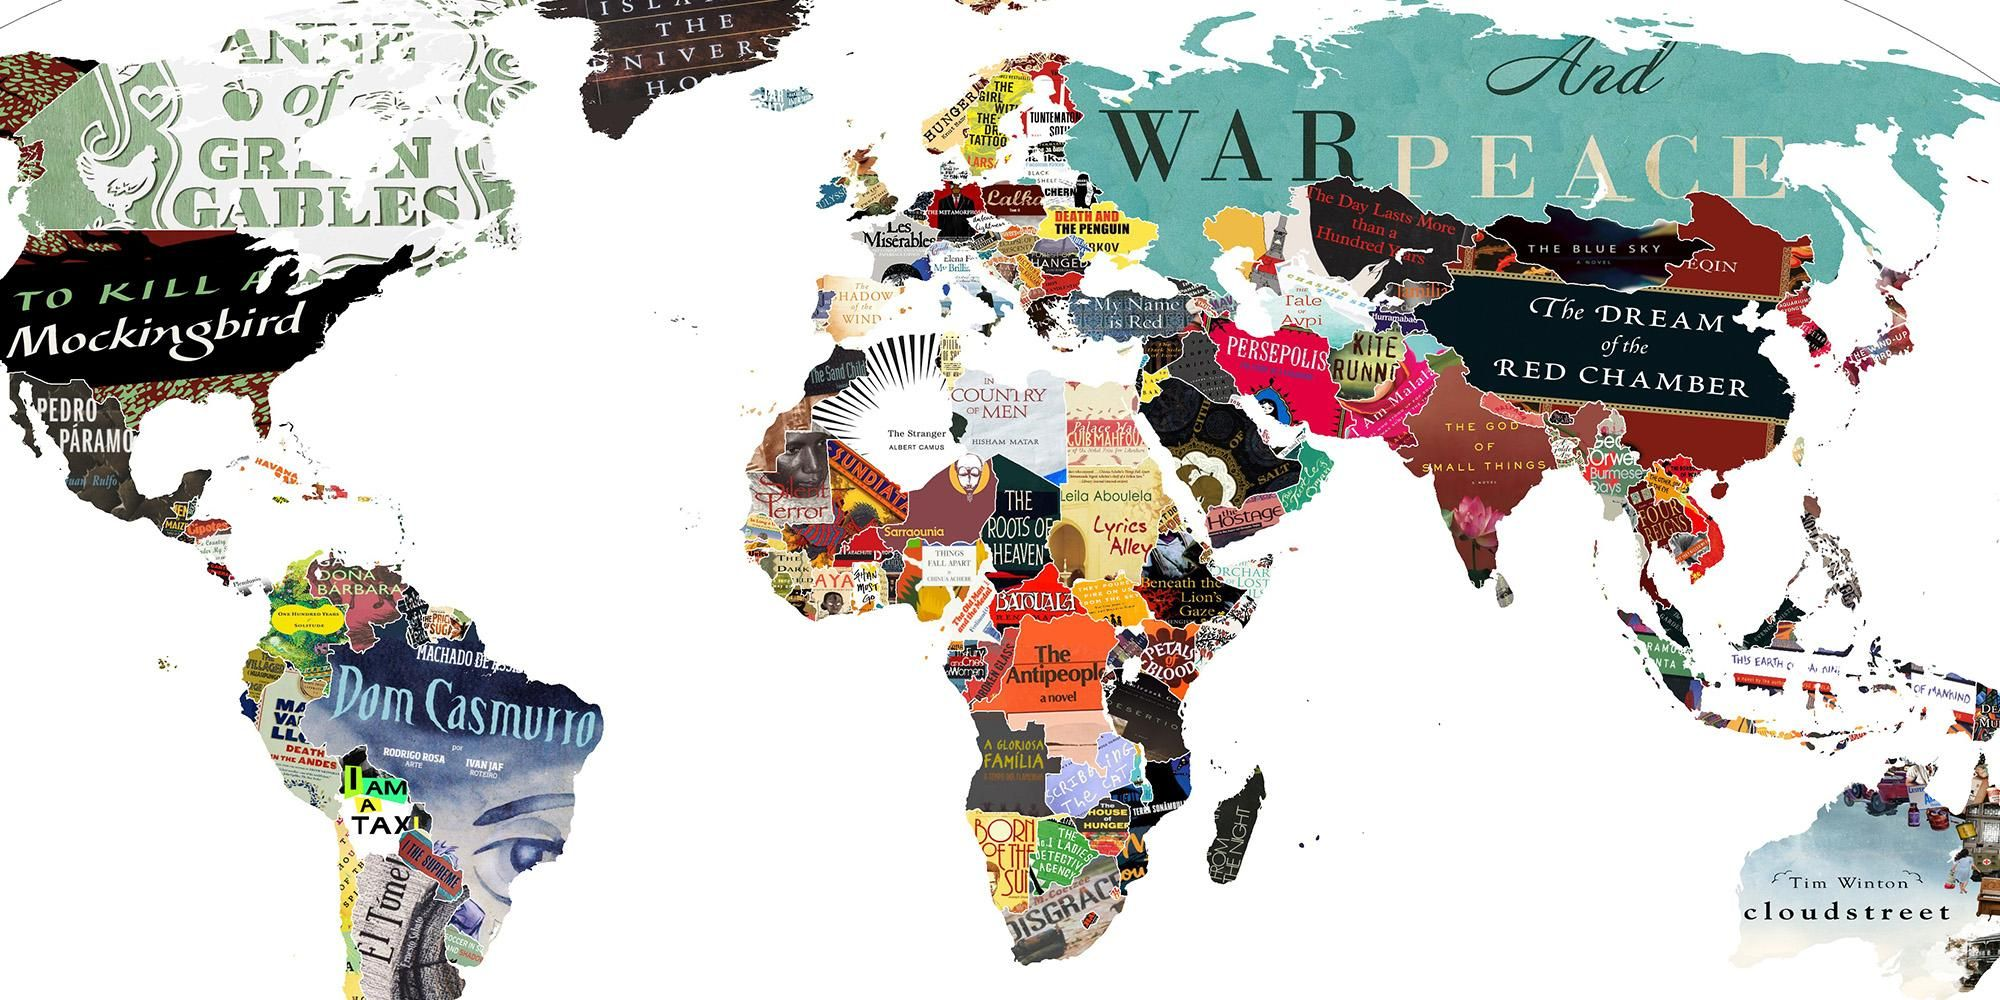 A map with the most important book of each country httpift a map with the most important book of each country httpift2n6cyjd gumiabroncs Image collections